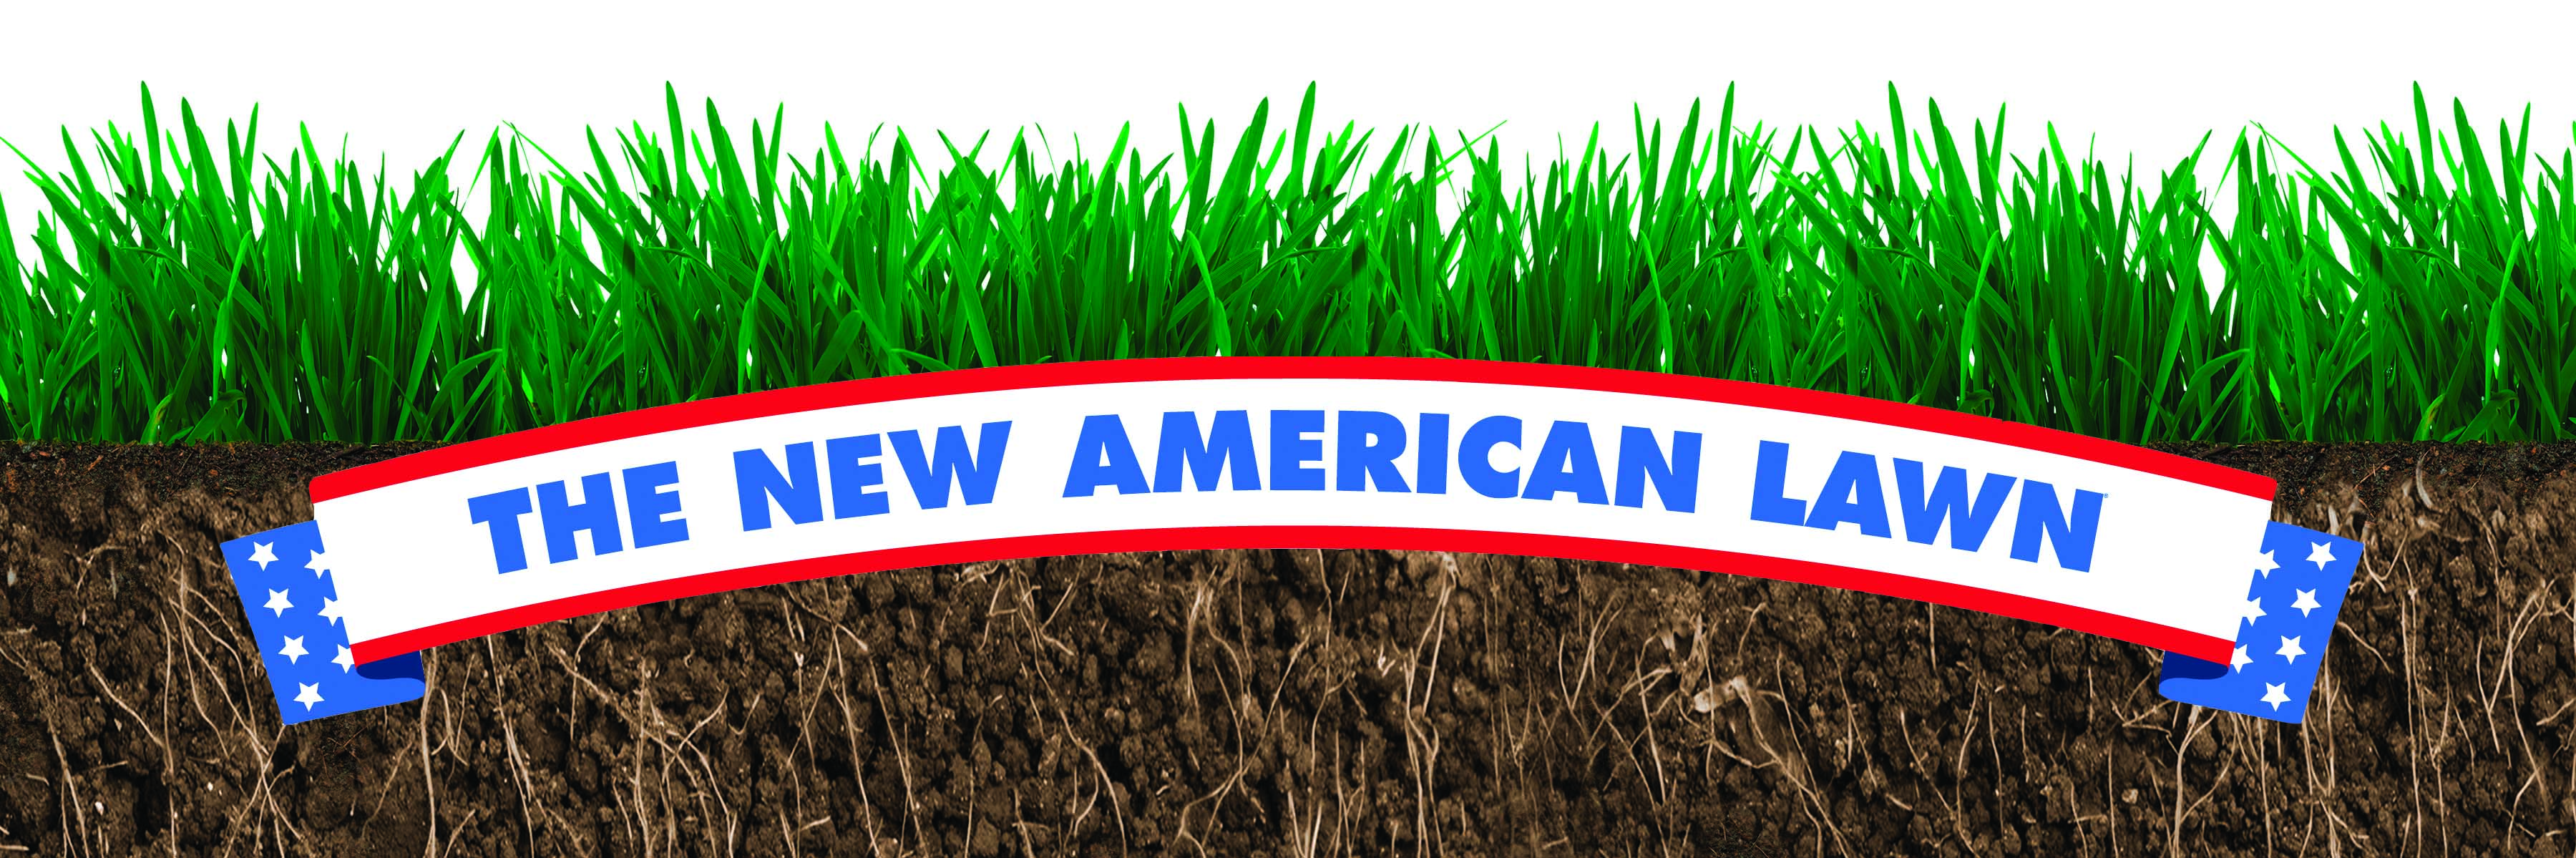 The new american lawn plan jonathan green for American soil